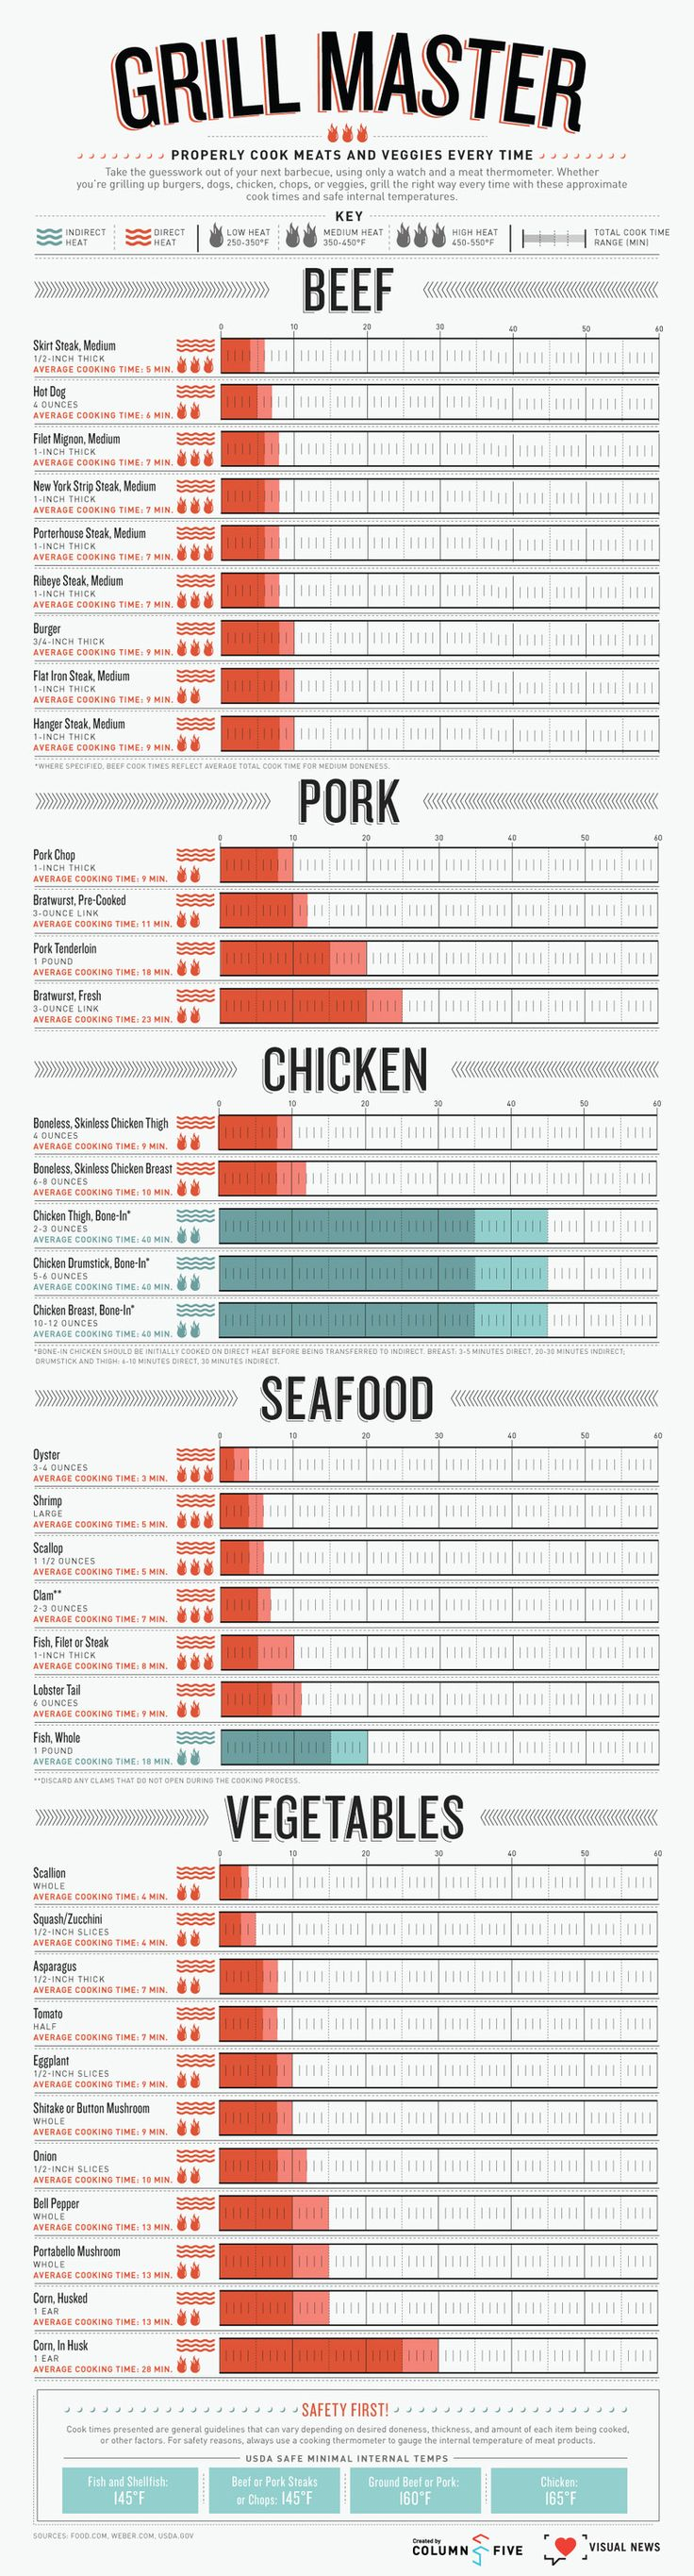 Infographic: A Cheat Sheet For Grilling Out | Co.Design: #grilling